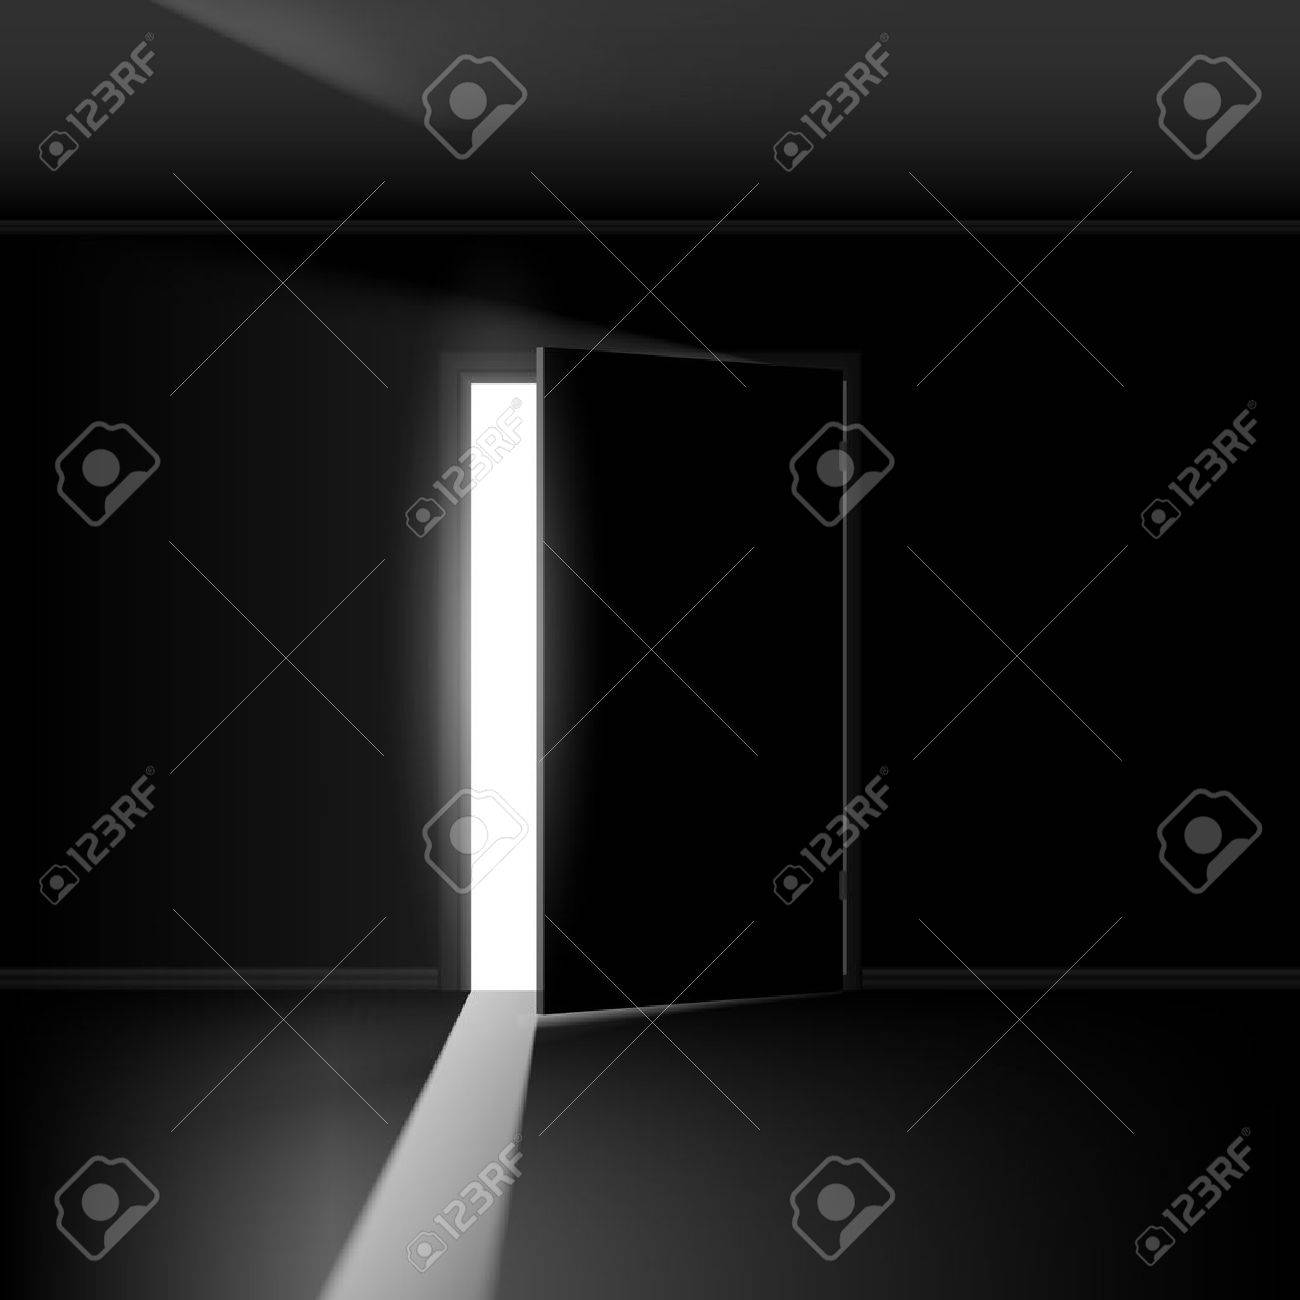 Dark bedroom background dark spotlight room background - Dark Room Open Door With Light Illustration On Empty Background